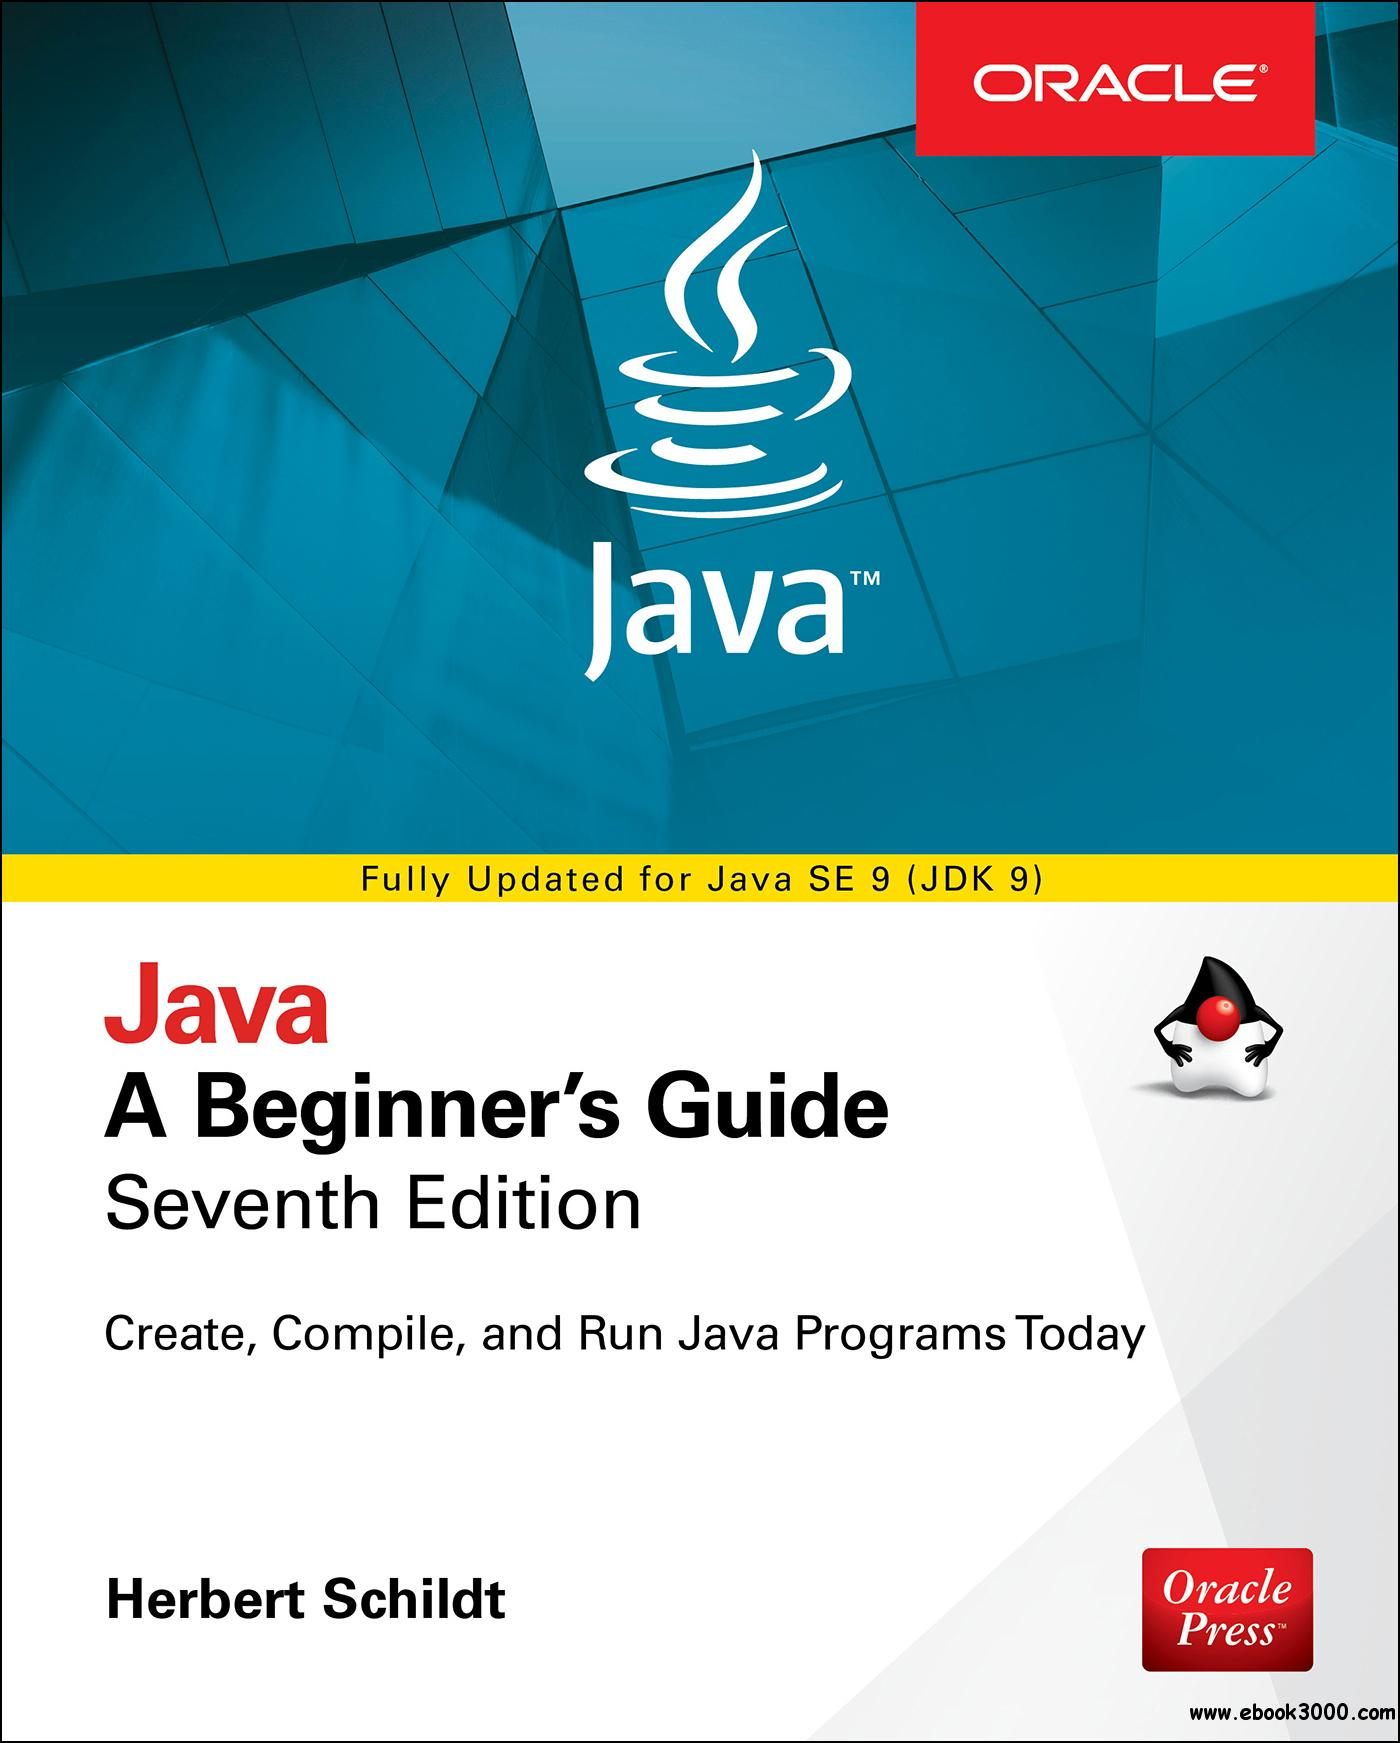 Java: A Beginner's Guide, 7th Edition